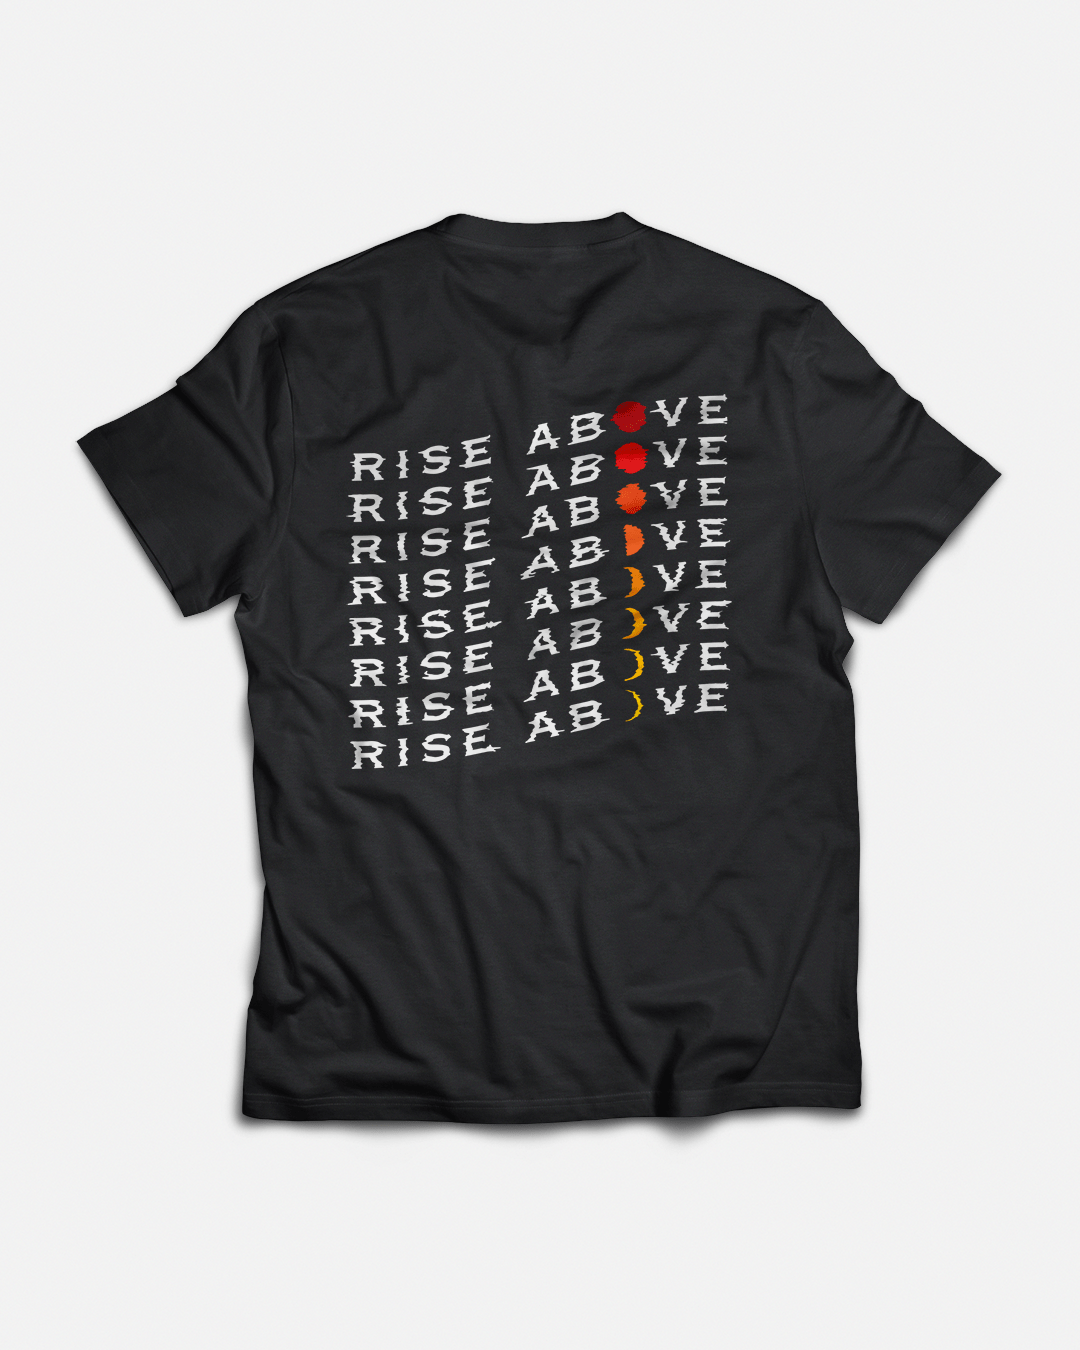 Rise Above ✶ T-Shirt - Passion Parade Co.